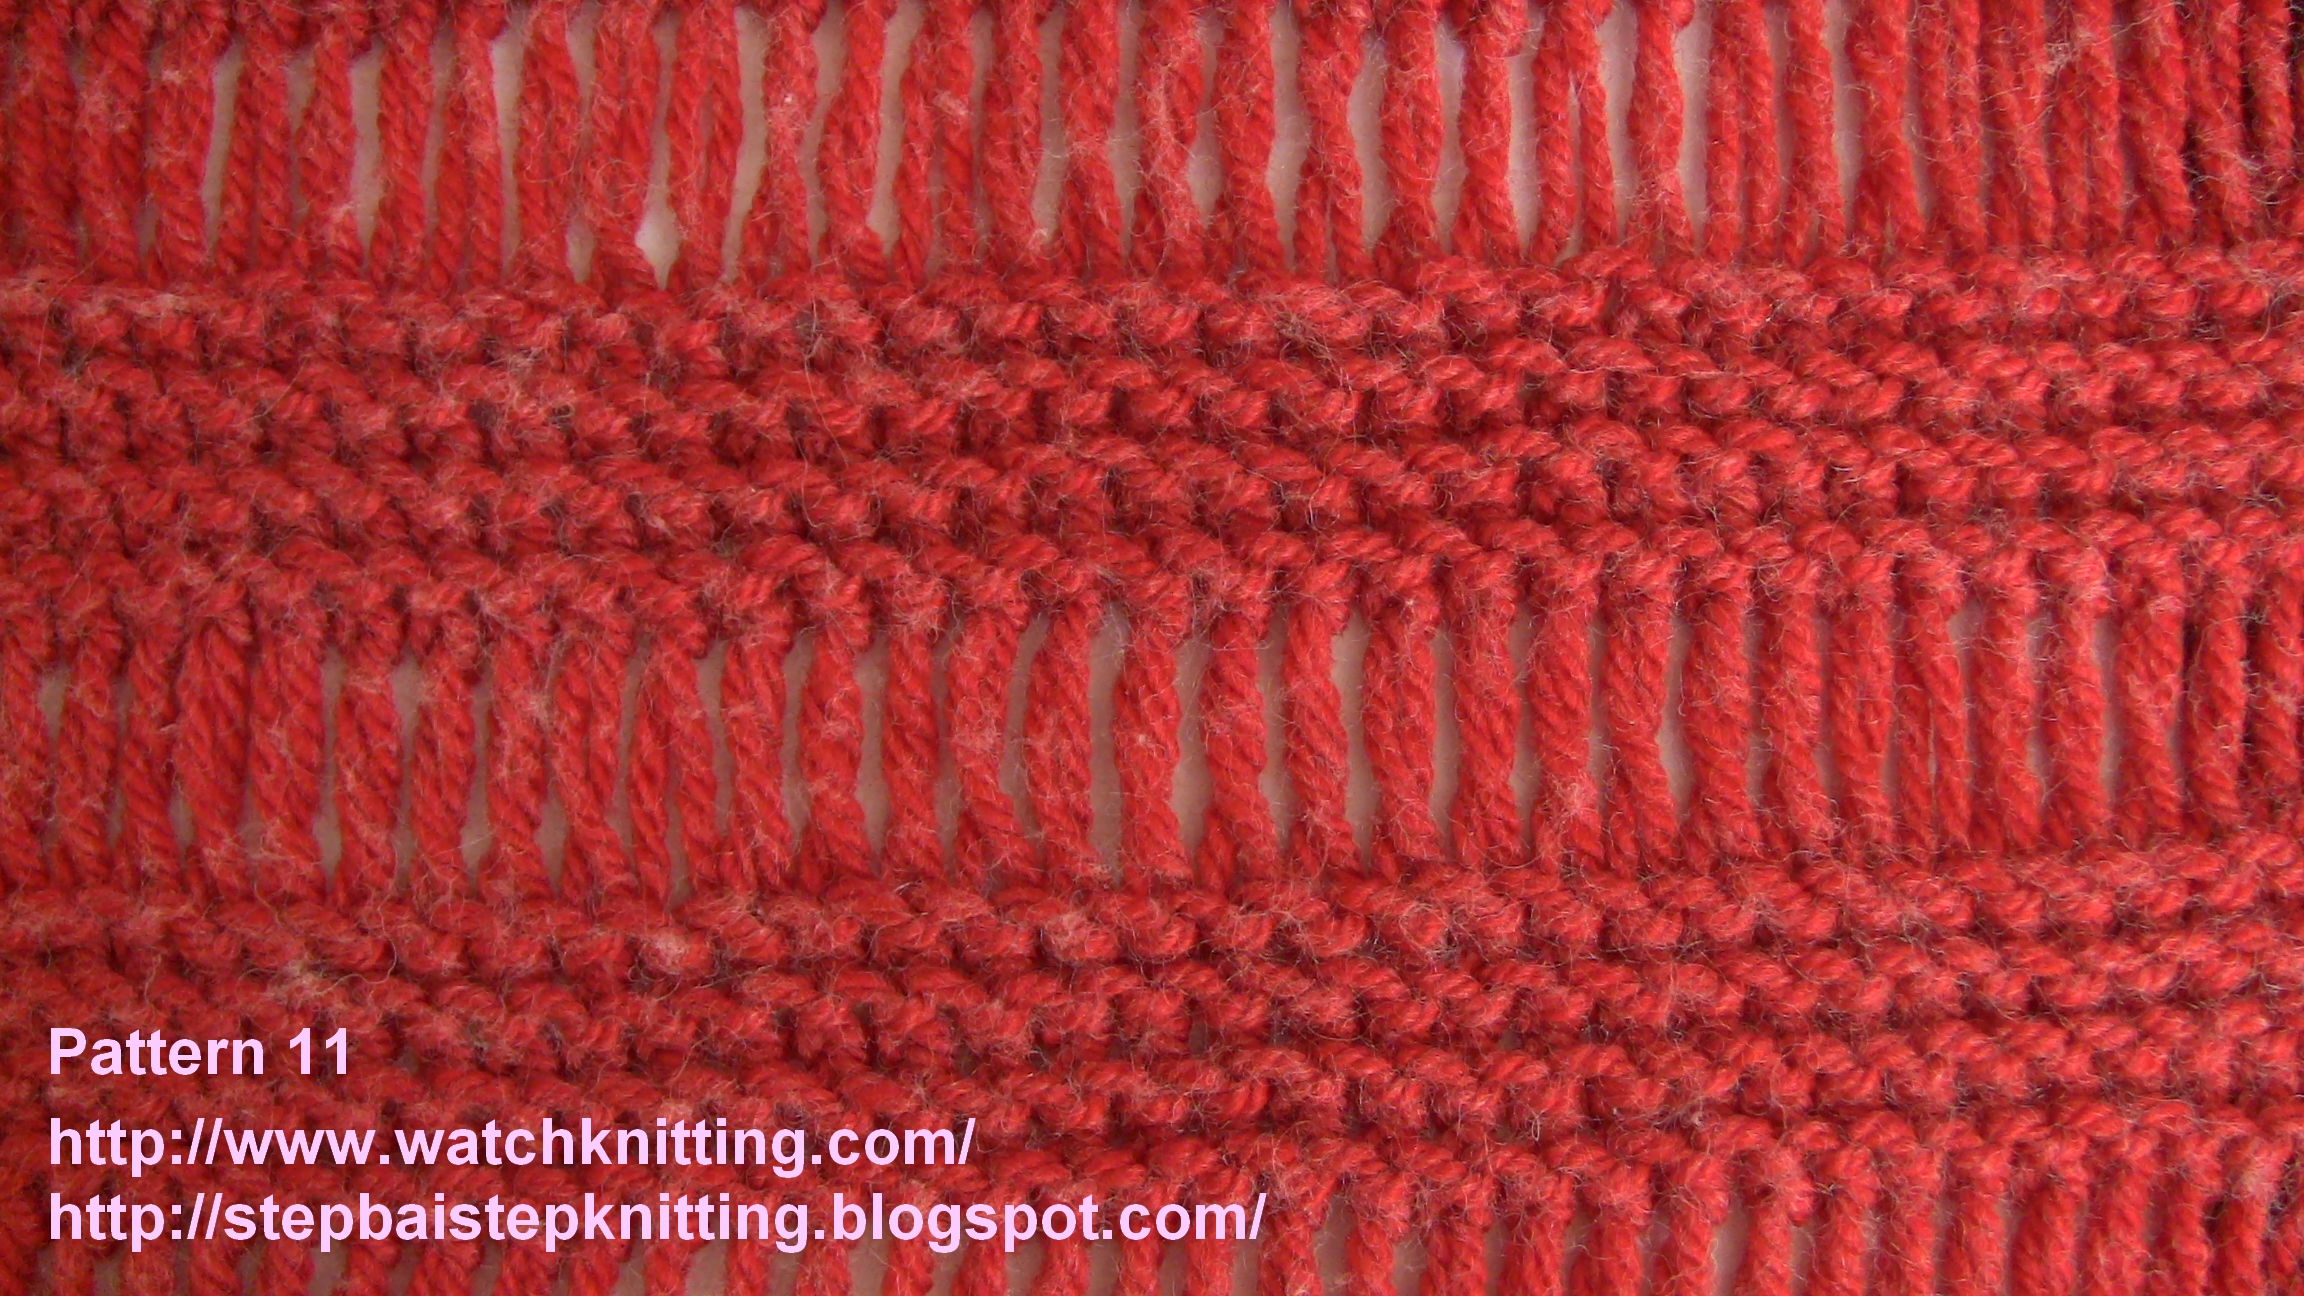 Knitting Pattern Instructions Explained : Knitting Models - Pattern 11 (Cage model)